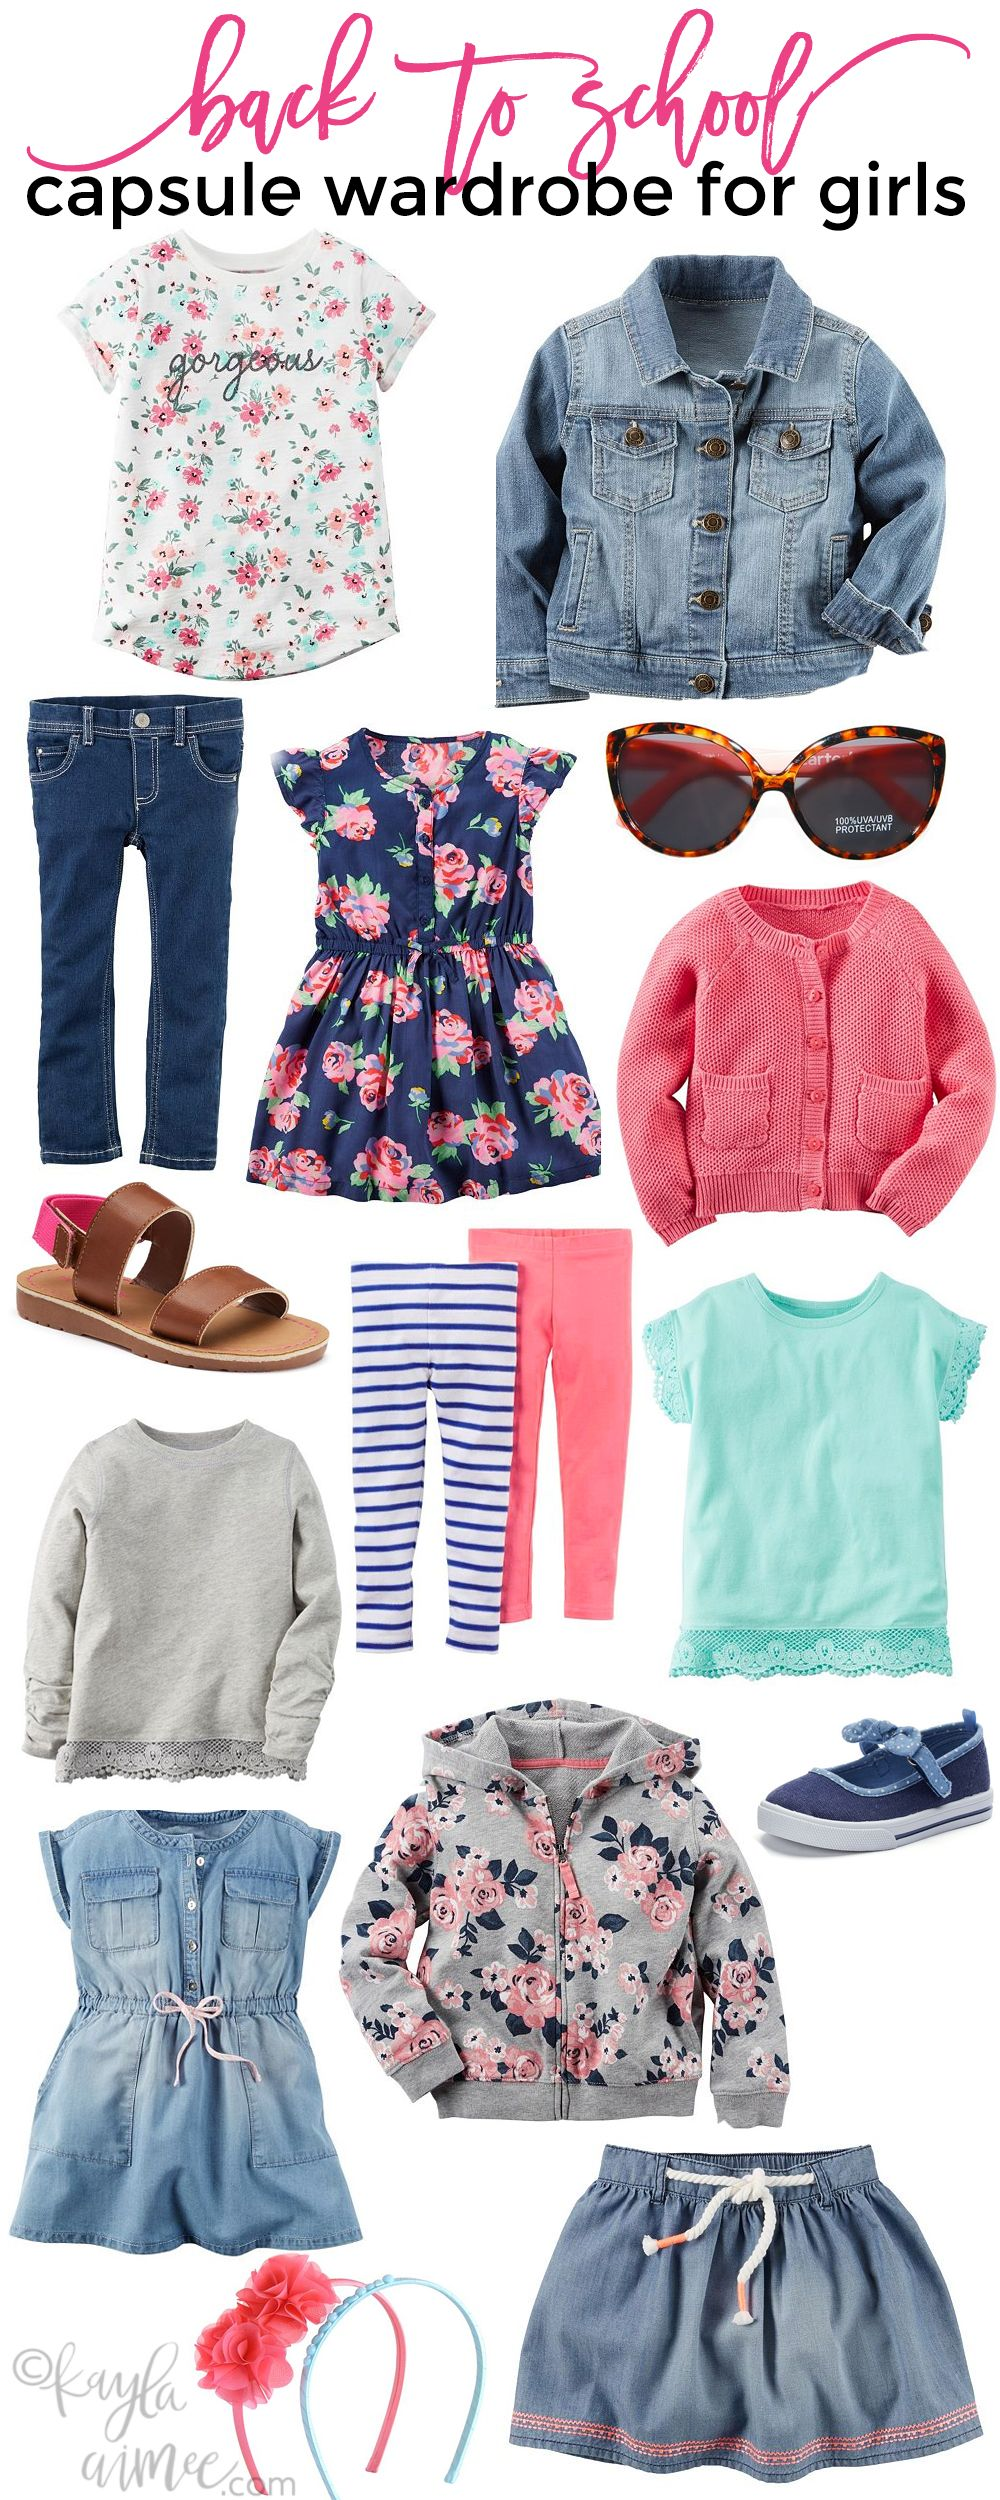 62a4fa2bf334d Boy Meets World Fashion. Back To School Capsule Wardrobe For Little Girls -  Under $200 from the Carter's line @Koh #ad #FirstDayEveryday